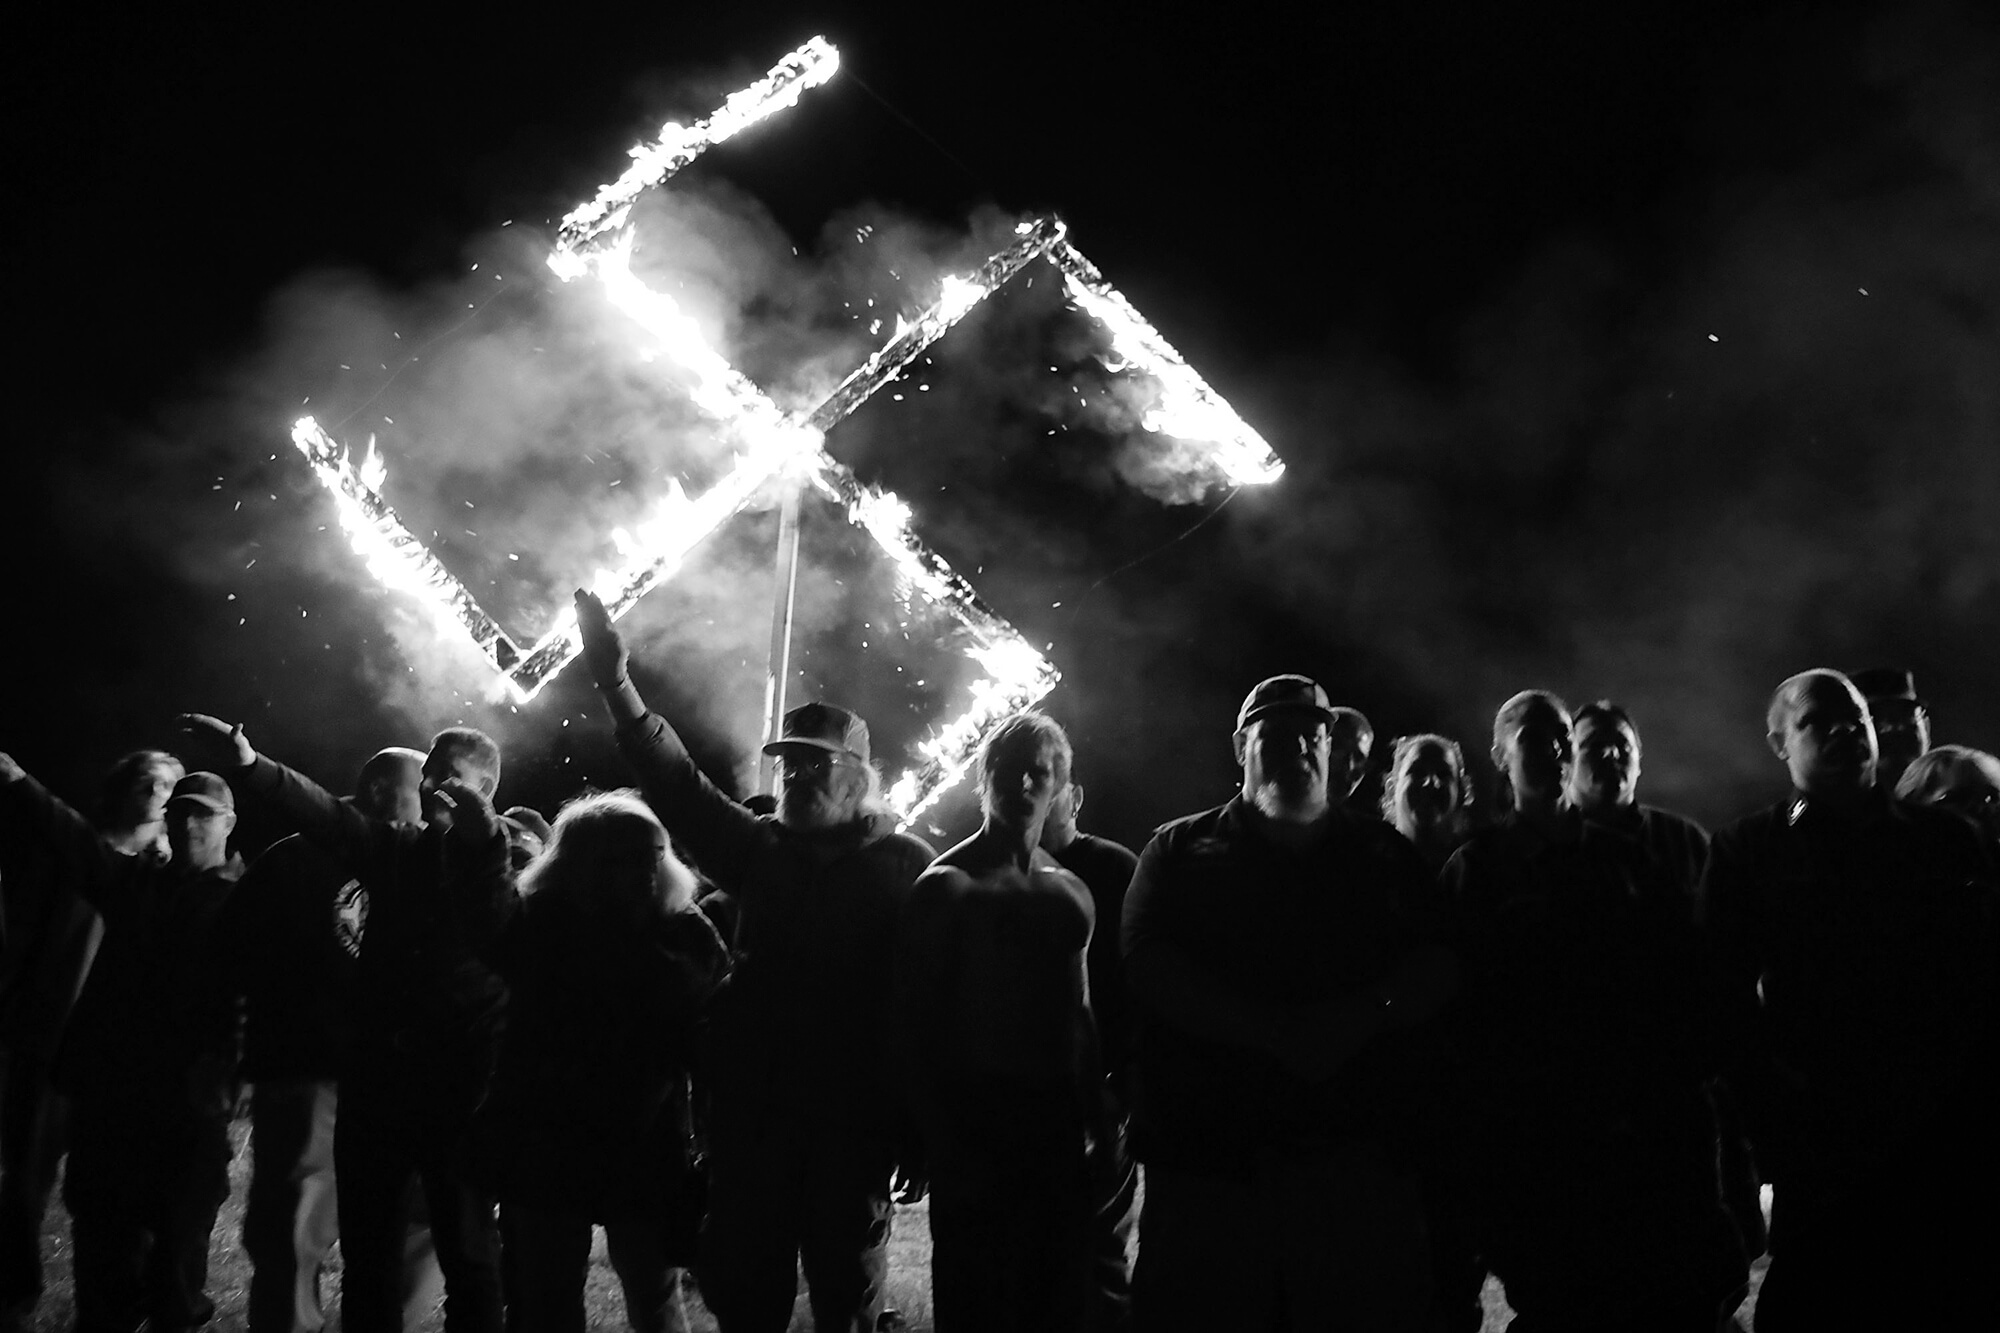 Members of the National Socialist Movement, one of the largest neo-Nazi groups in the US, hold a swastika burning after a rally in April 2018 in Draketown, Ga. From the White House, Donald Trump ignored the danger of white supremacist groups, and equivocated on the threat they posed to American values and the homeland.Trump later went on to foment an insurrection and attempted coup with the support of white supremacist groups.